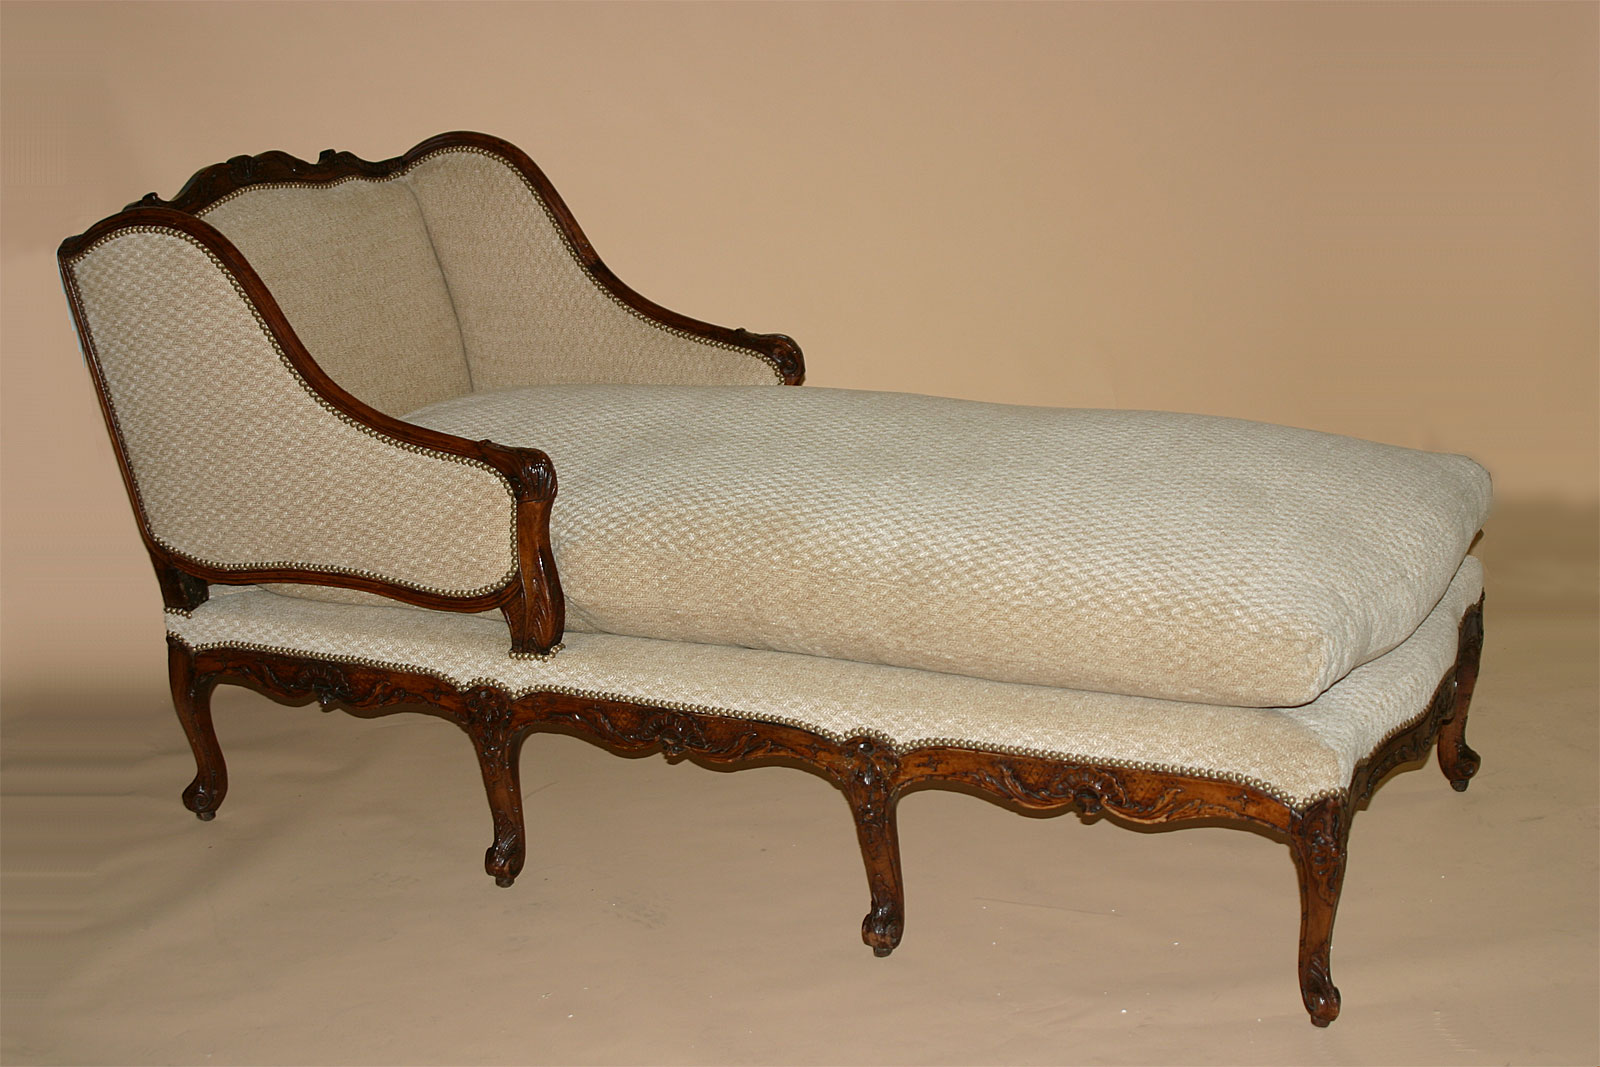 French louis xv period chaise longue for sale antiques for Chaise couches for sale